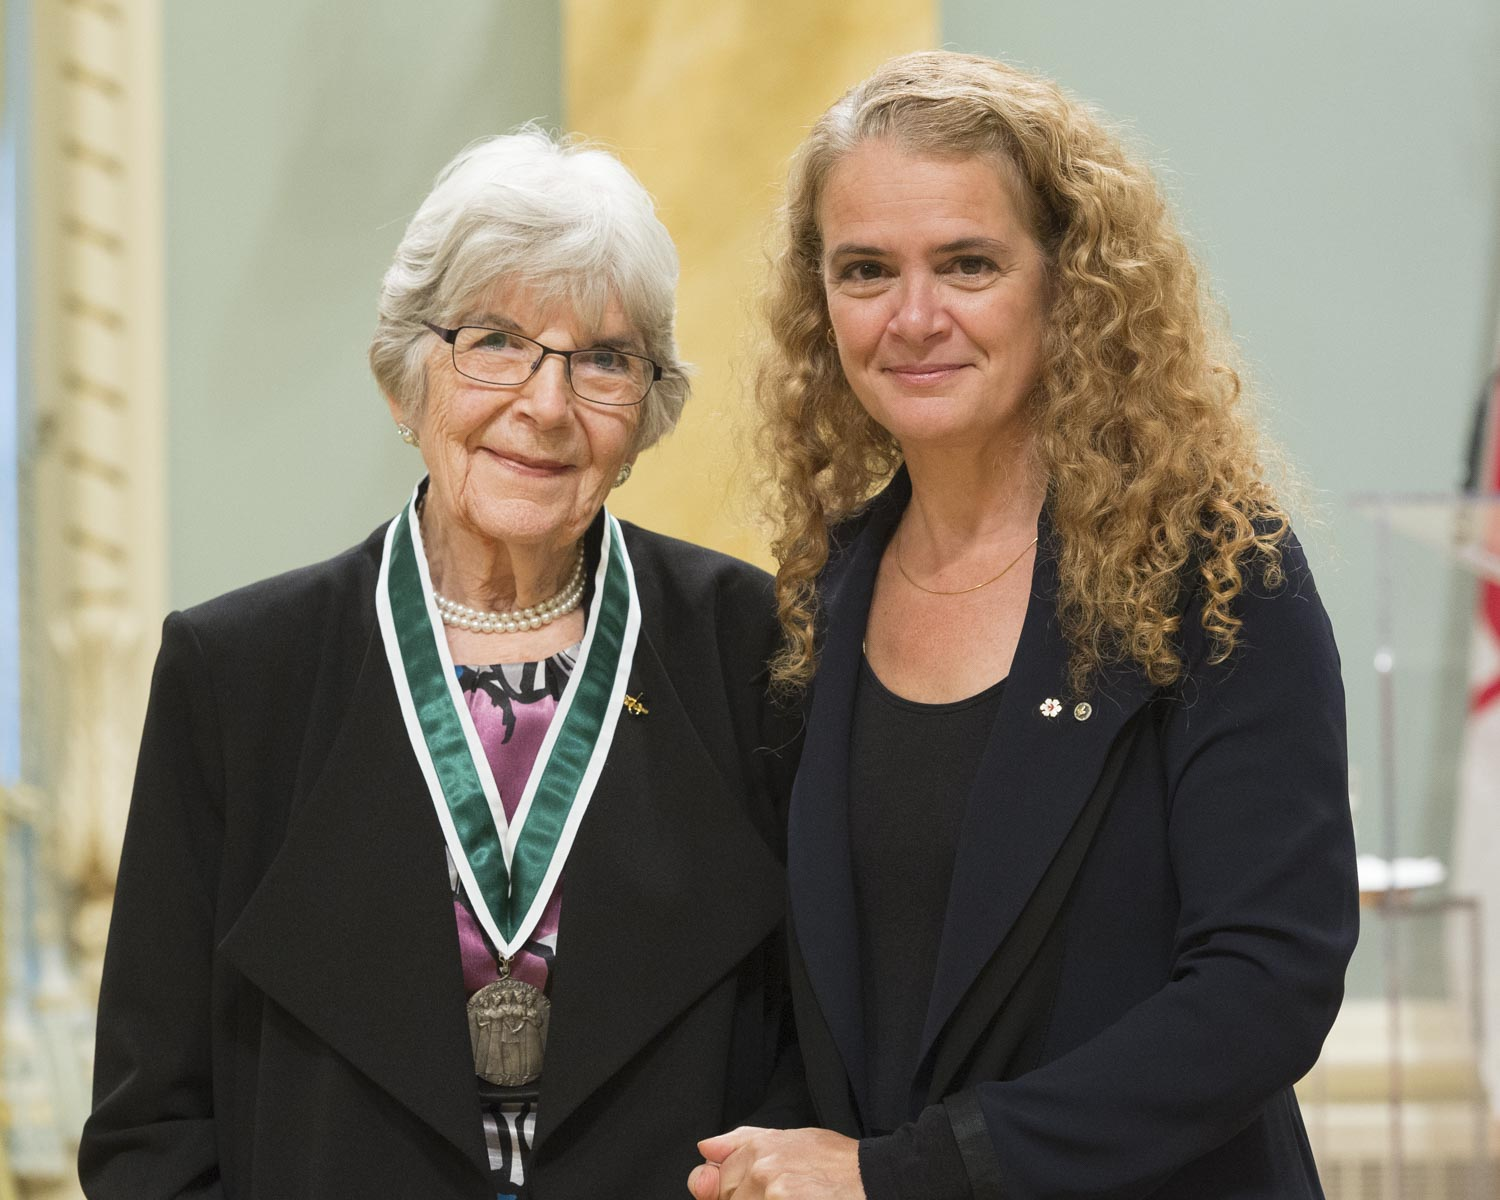 Betsy Bury, of Saskatoon, Saskatchewan, is recognized for her social justice initiatives in the areas of women's rights and access to health care services.